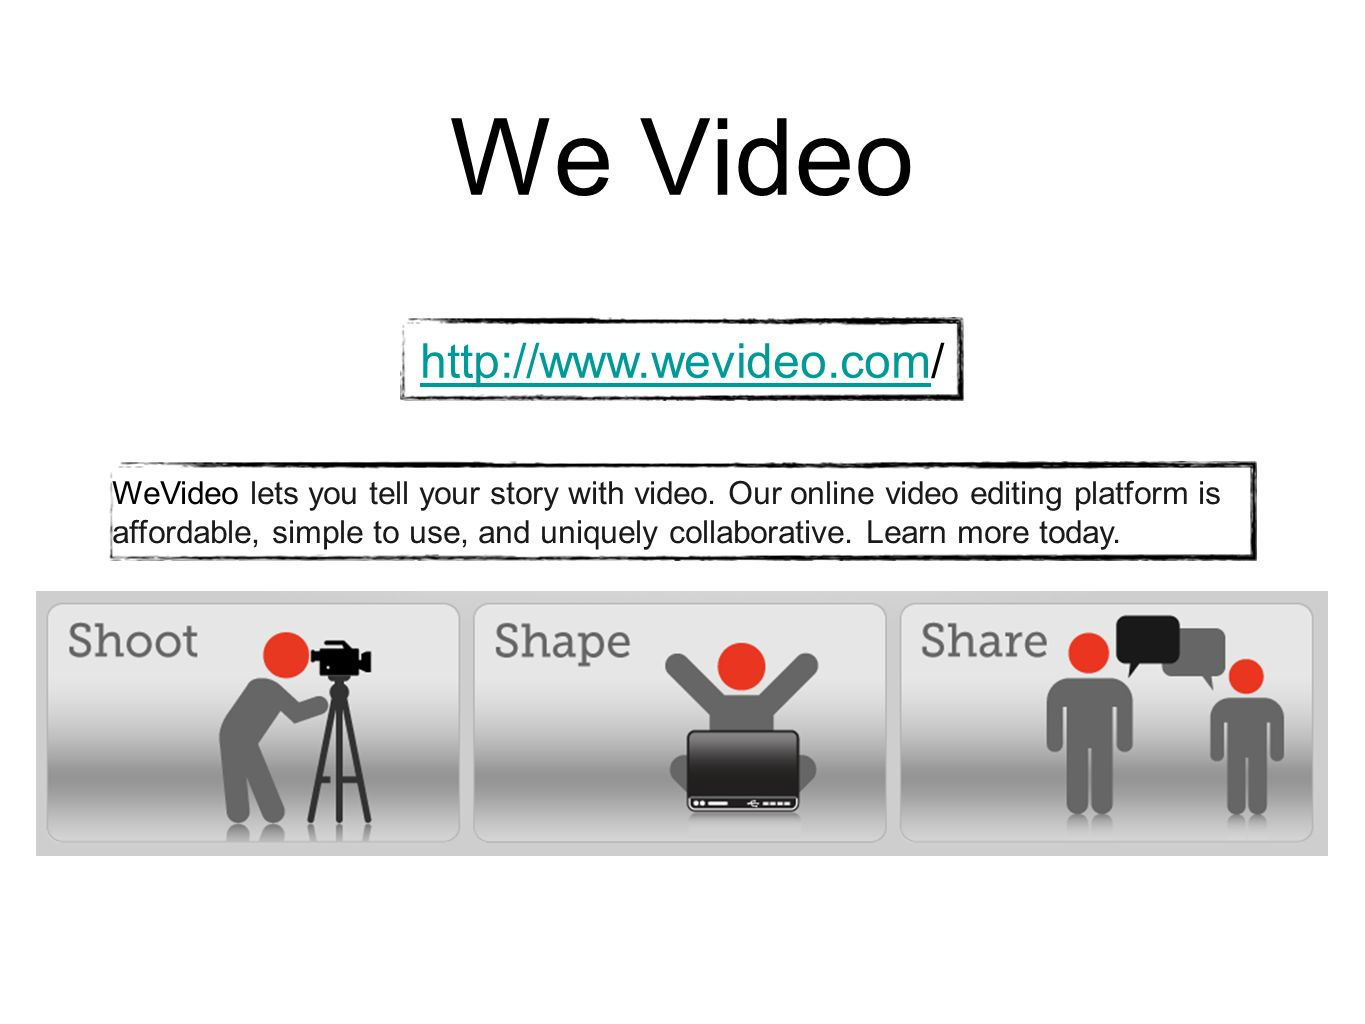 We Video http://www.wevideo.com/